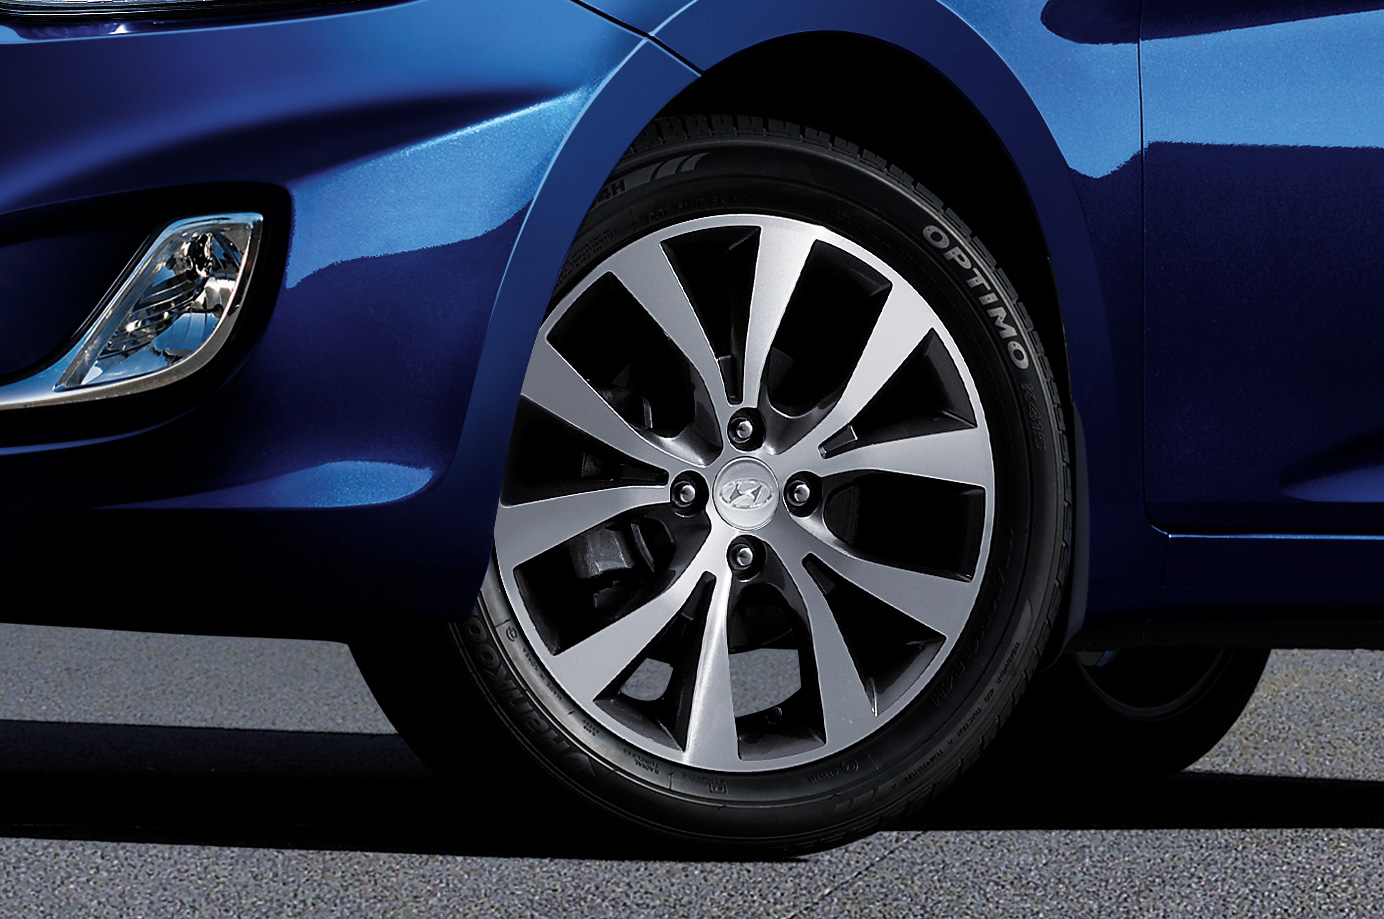 "16"" two-tone alloy wheels."